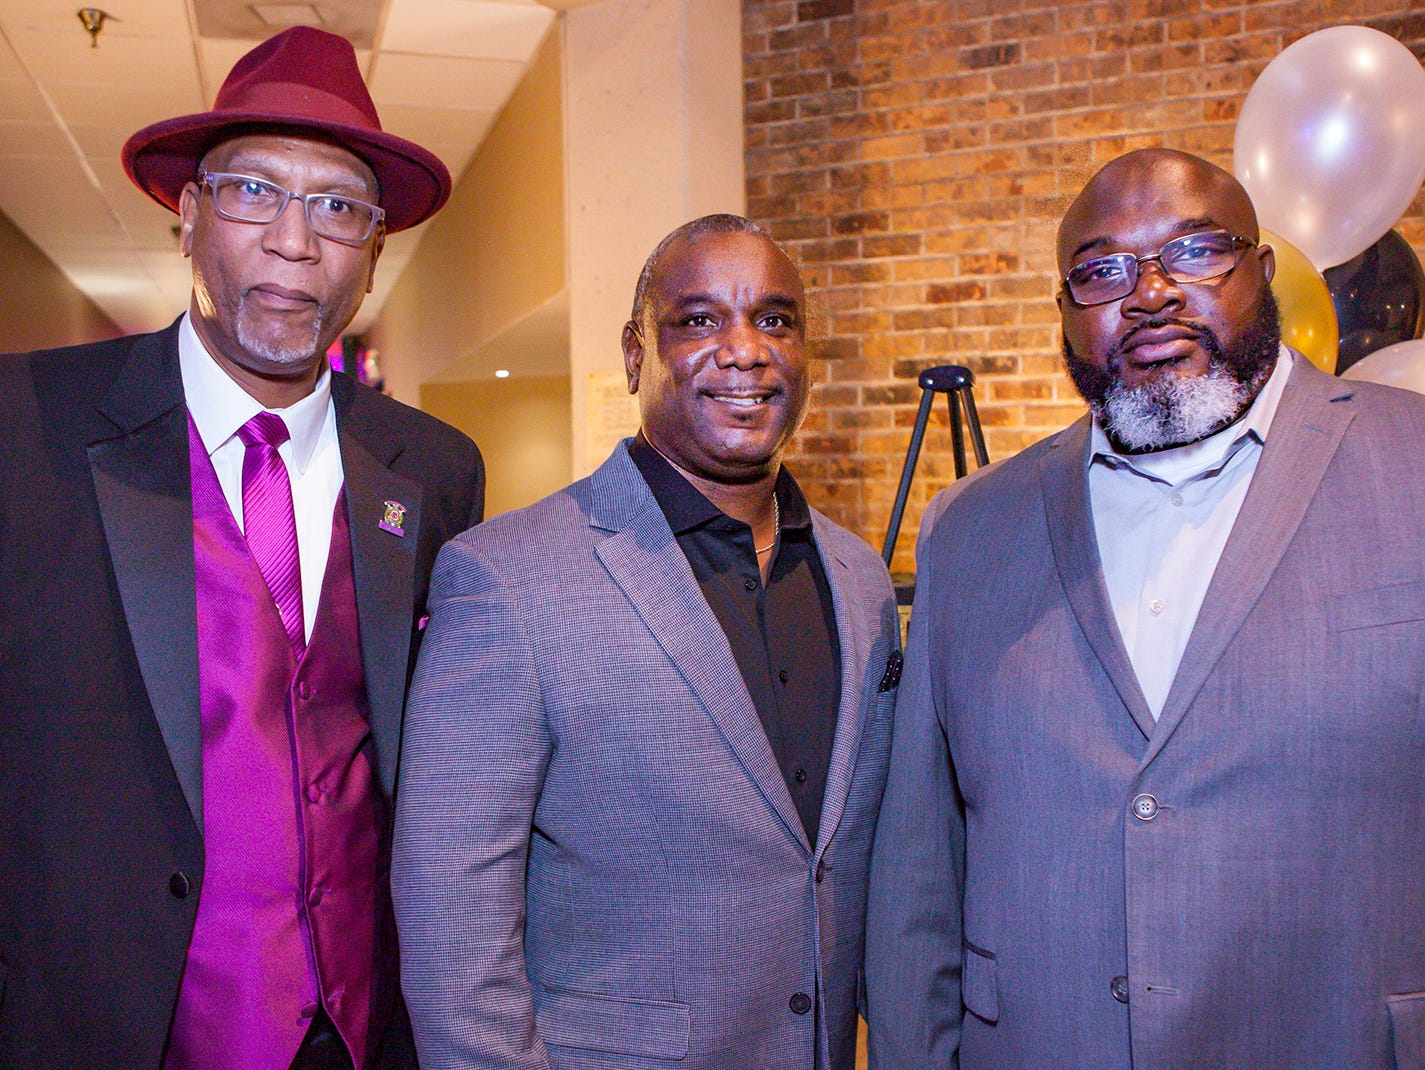 Willie Nelson, Michael Polk and Sean Adams at the Pyramid Foundation's Shimmer and Shine New Year's Eve party, held at DoubleTree Hotel in Murfreesboro.